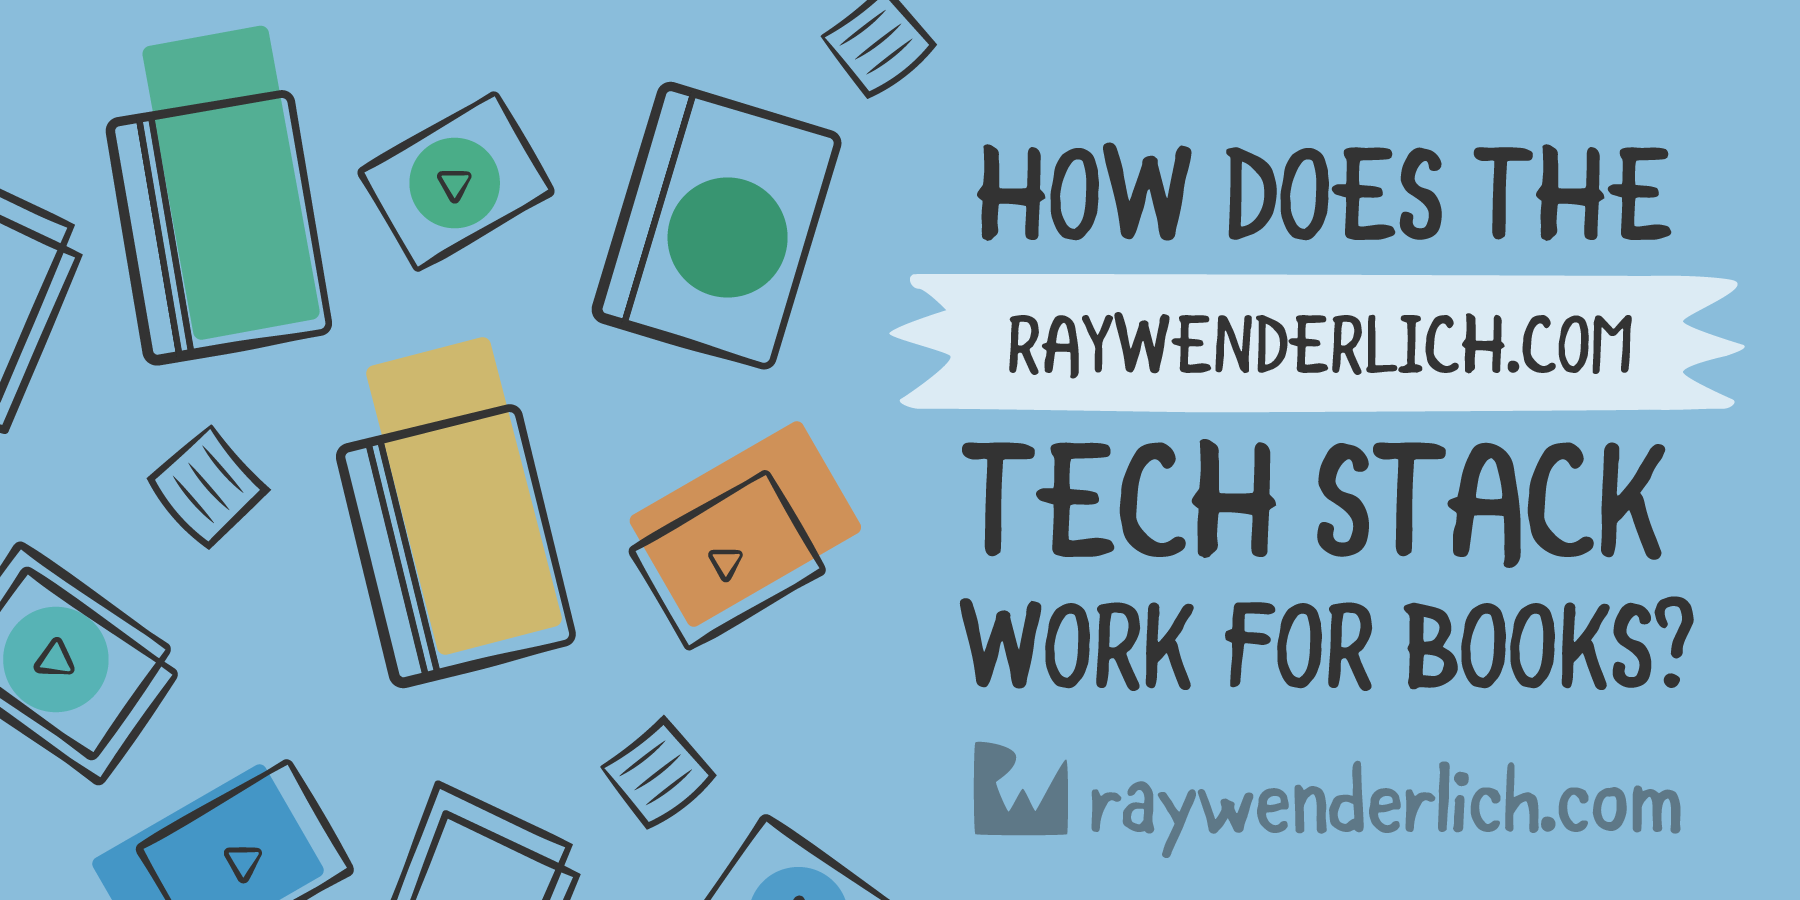 How Does the raywenderlich.com Tech Stack Work for Books? [FREE] - RapidAPI